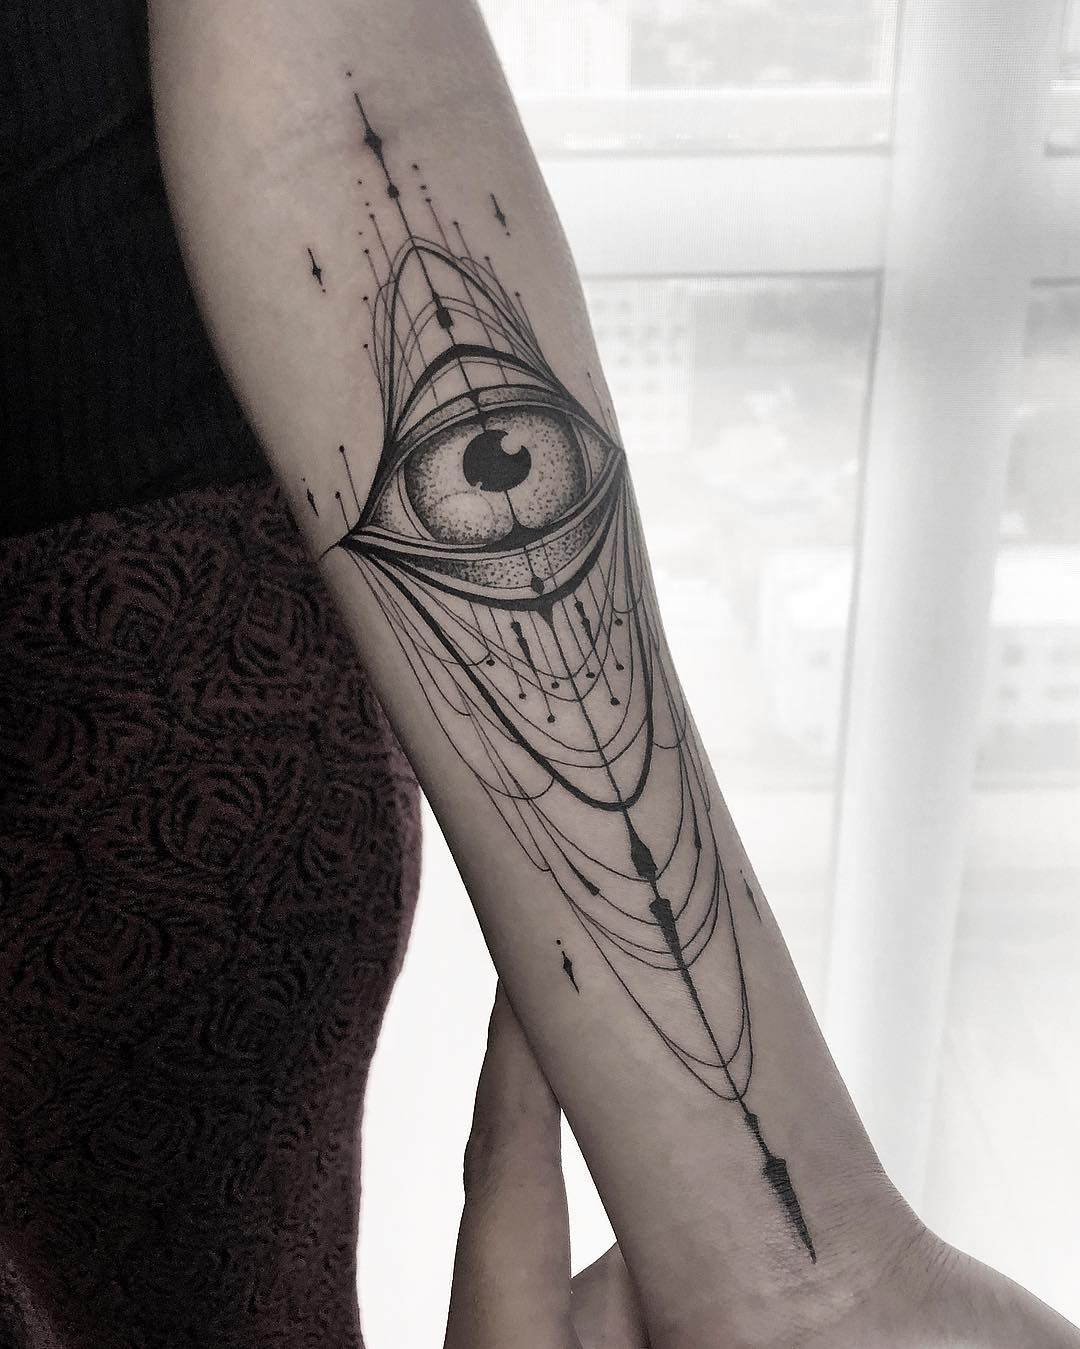 Eye tattoo from mcapocci